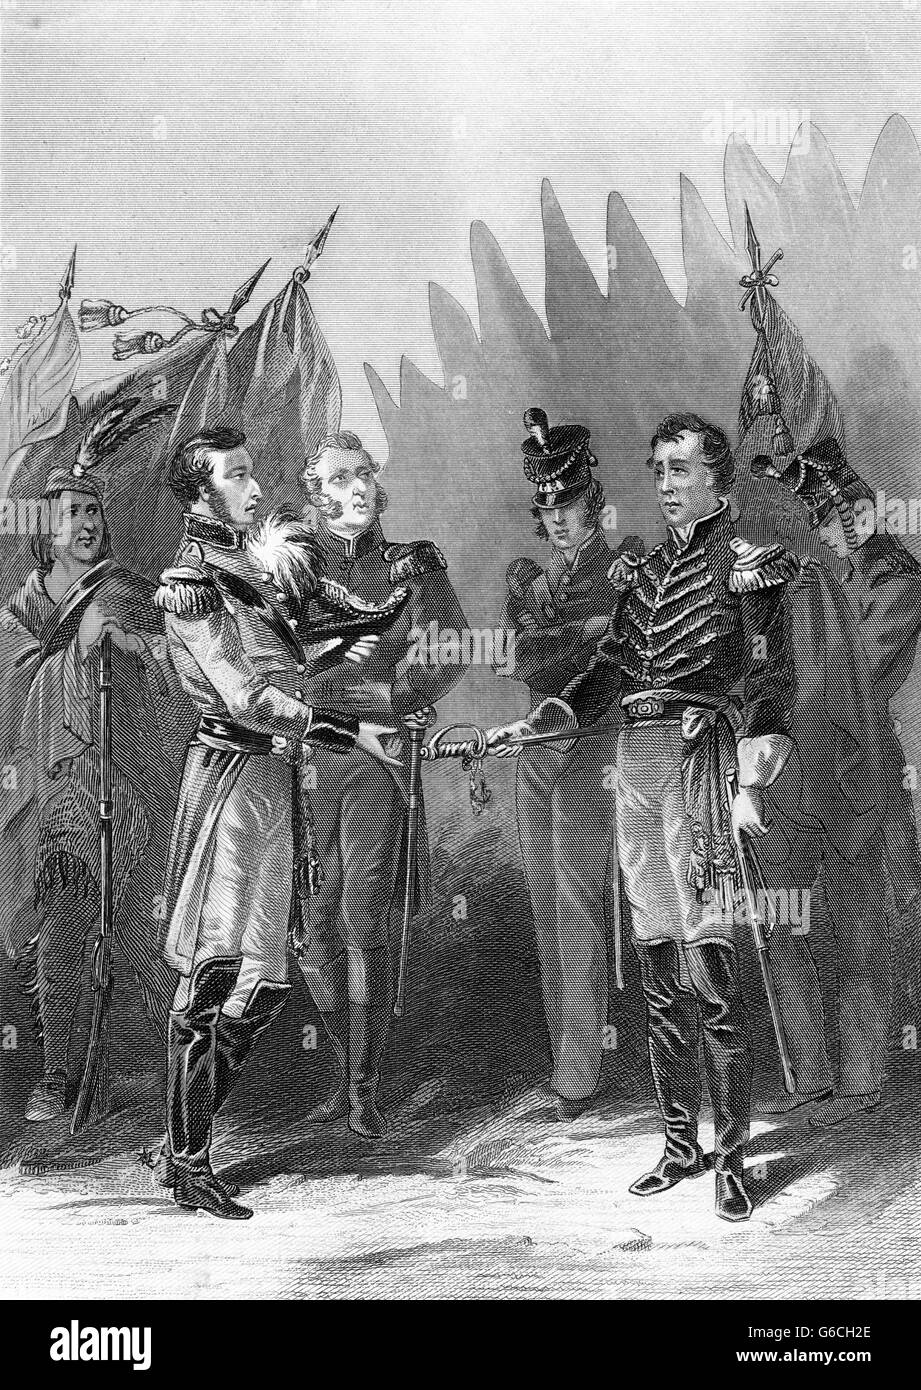 GENERAL WILLIAM HULL SURRENDERS DETROIT TO THE BRITISH AUGUST 16 DURING THE WAR OF 1812 - Stock Image